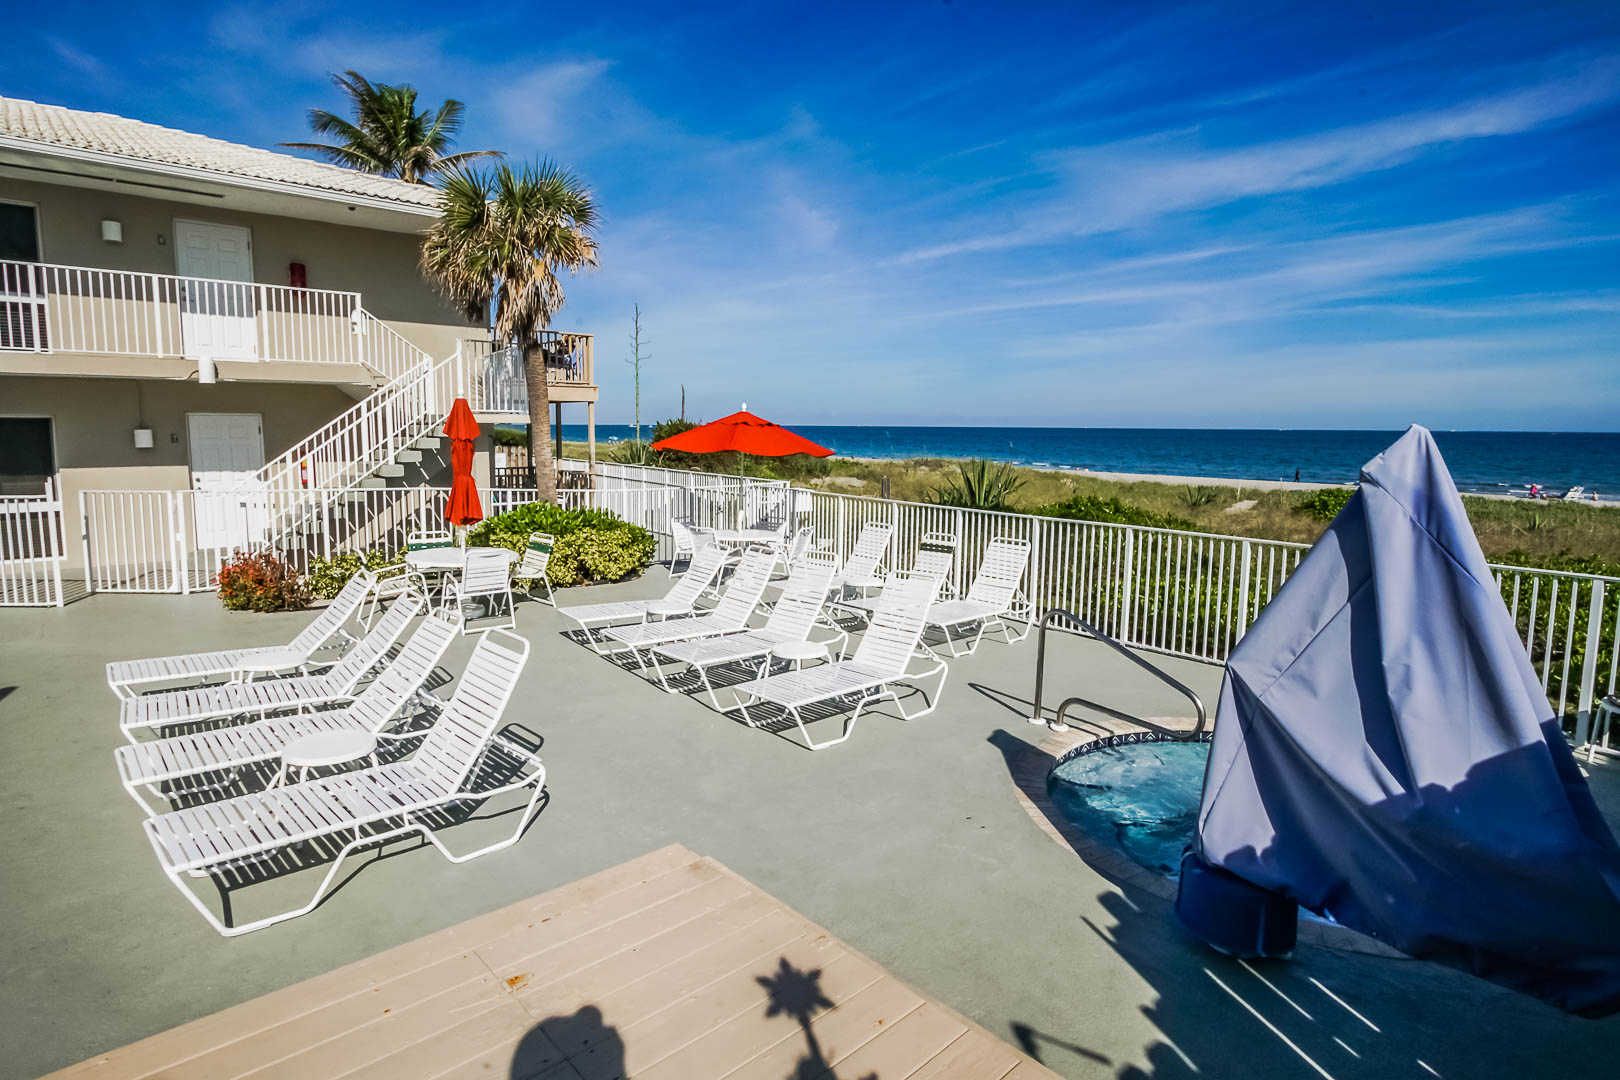 a relaxing view of the poolside at VRI's Berkshire Beach Club in Florida